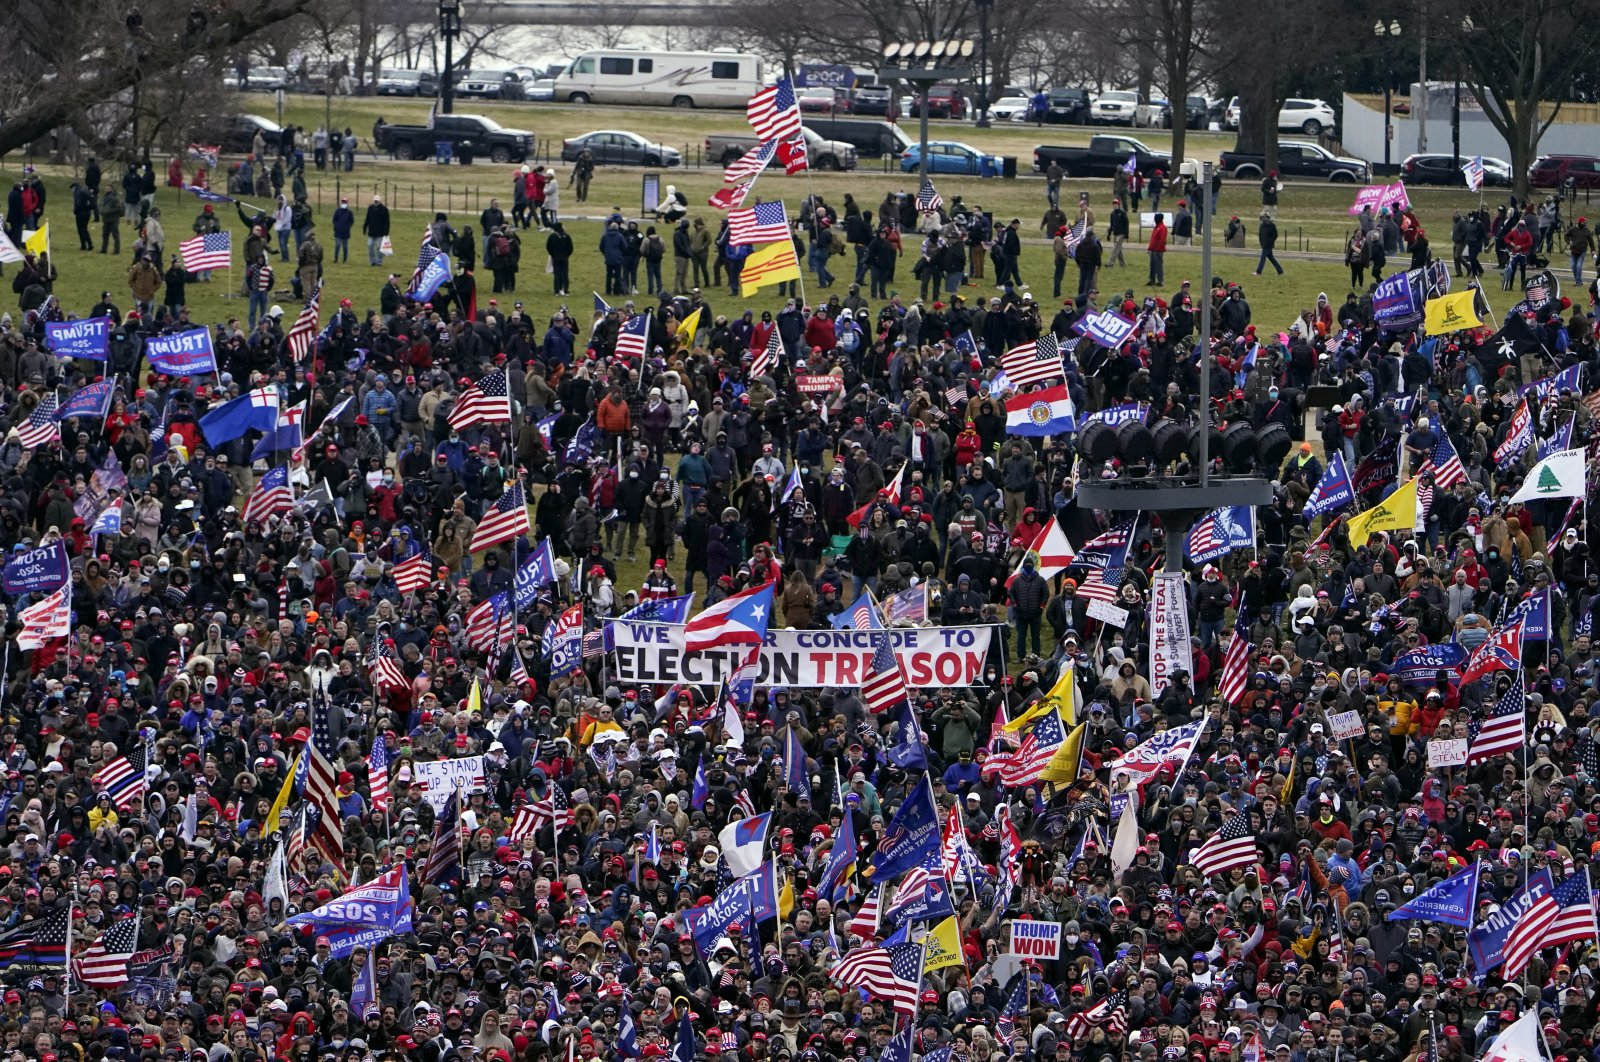 Supporters of U.S. President Donald Trump gather to protest a meeting of Congress, Washington, D.C., Jan. 6, 2021. (AP Photo)